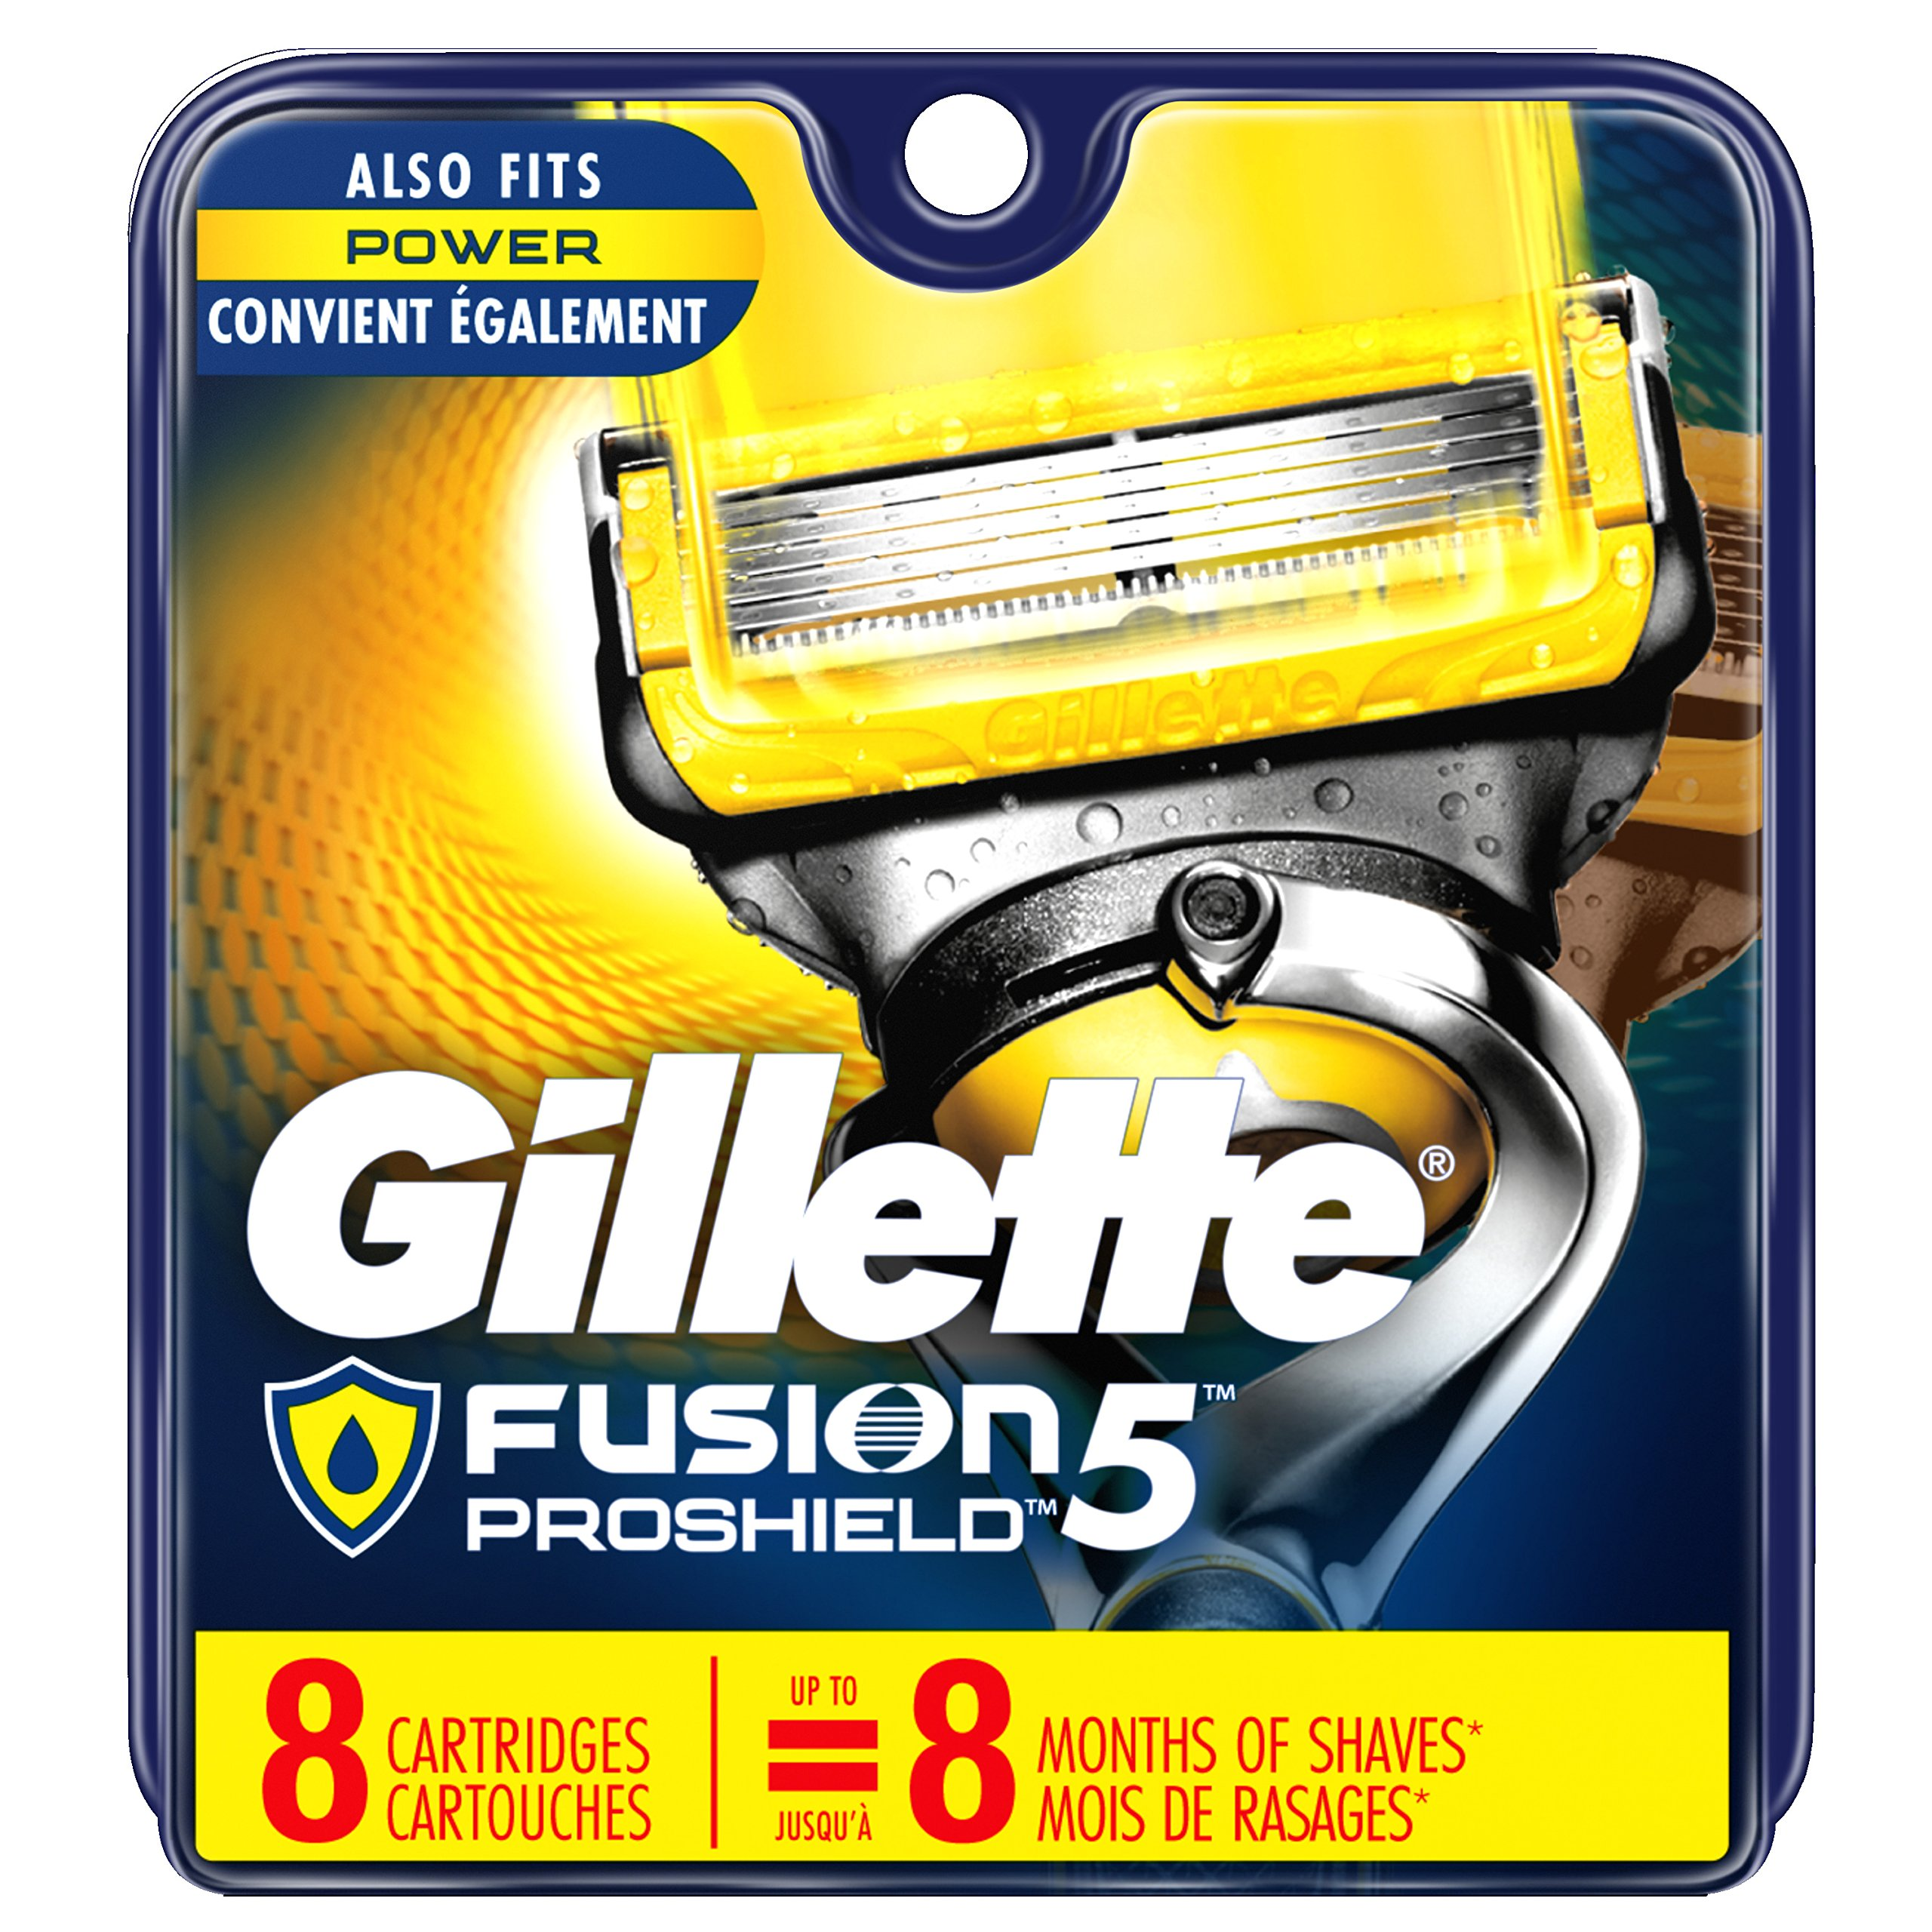 dating gillette razor blades Identify when your gillette adjustable razor was manufactured using the date code stamped on the bottom of the razor head.